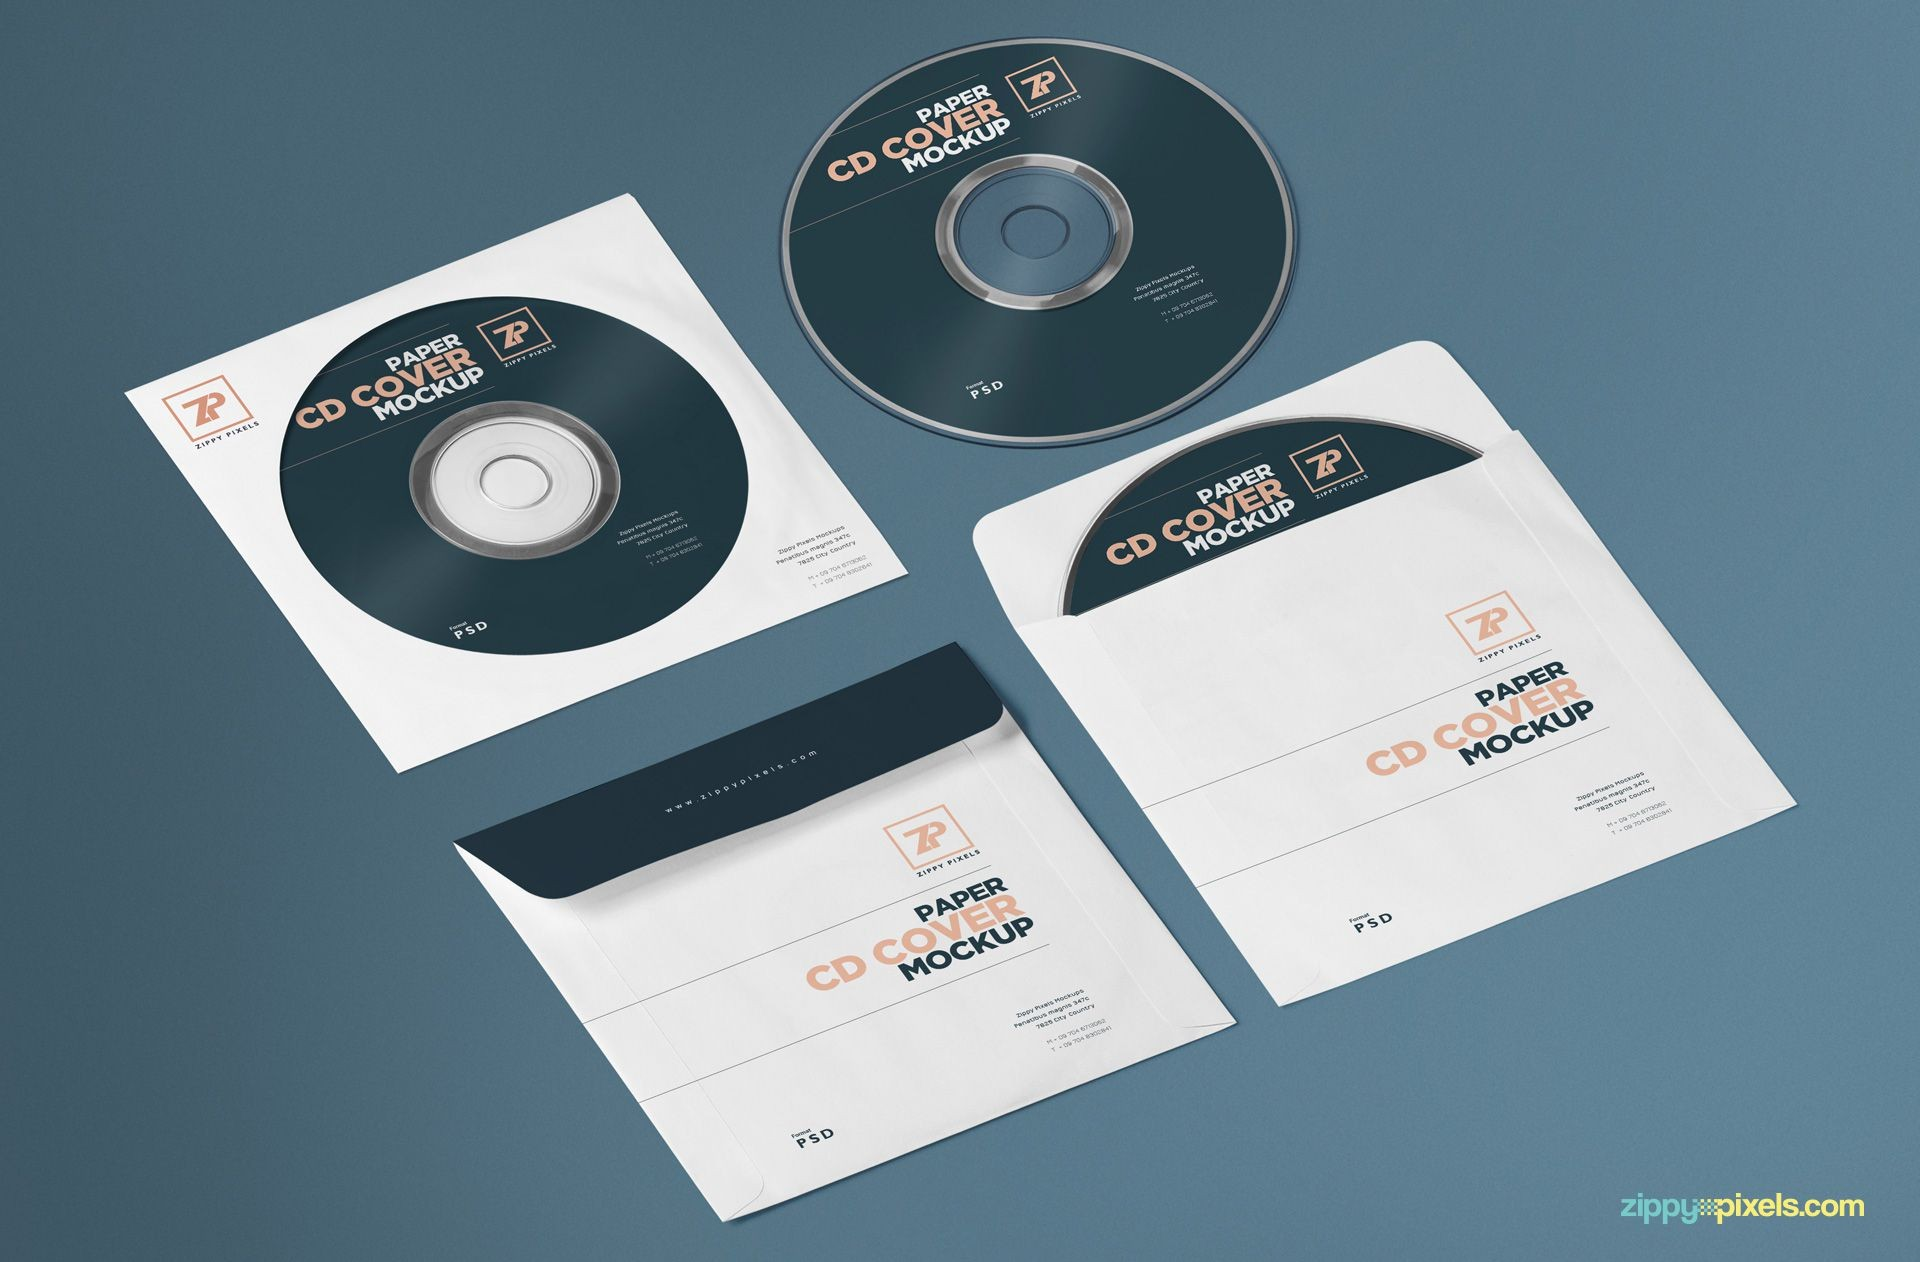 000 Striking Free Cd Cover Design Template Photoshop High Resolution  Label Psd Download1920